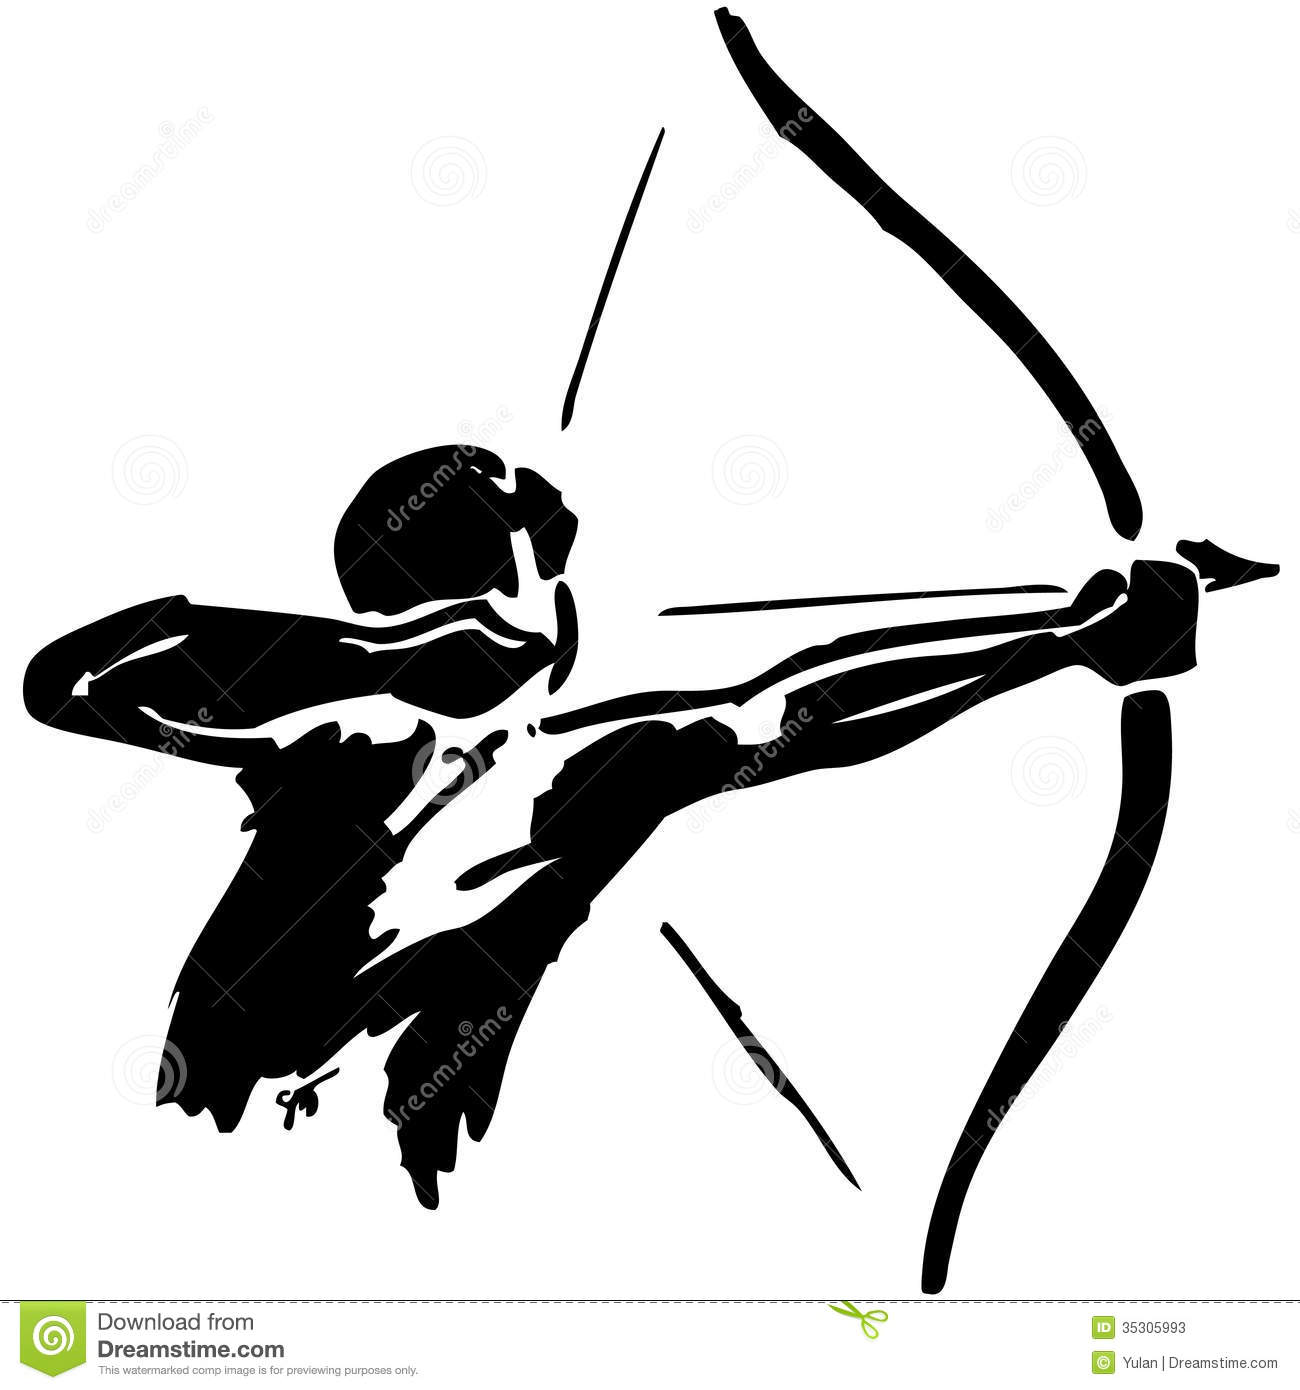 Bow and arrow images clip art vector royalty free library Archery Hunting Clipart - Clipart Kid vector royalty free library